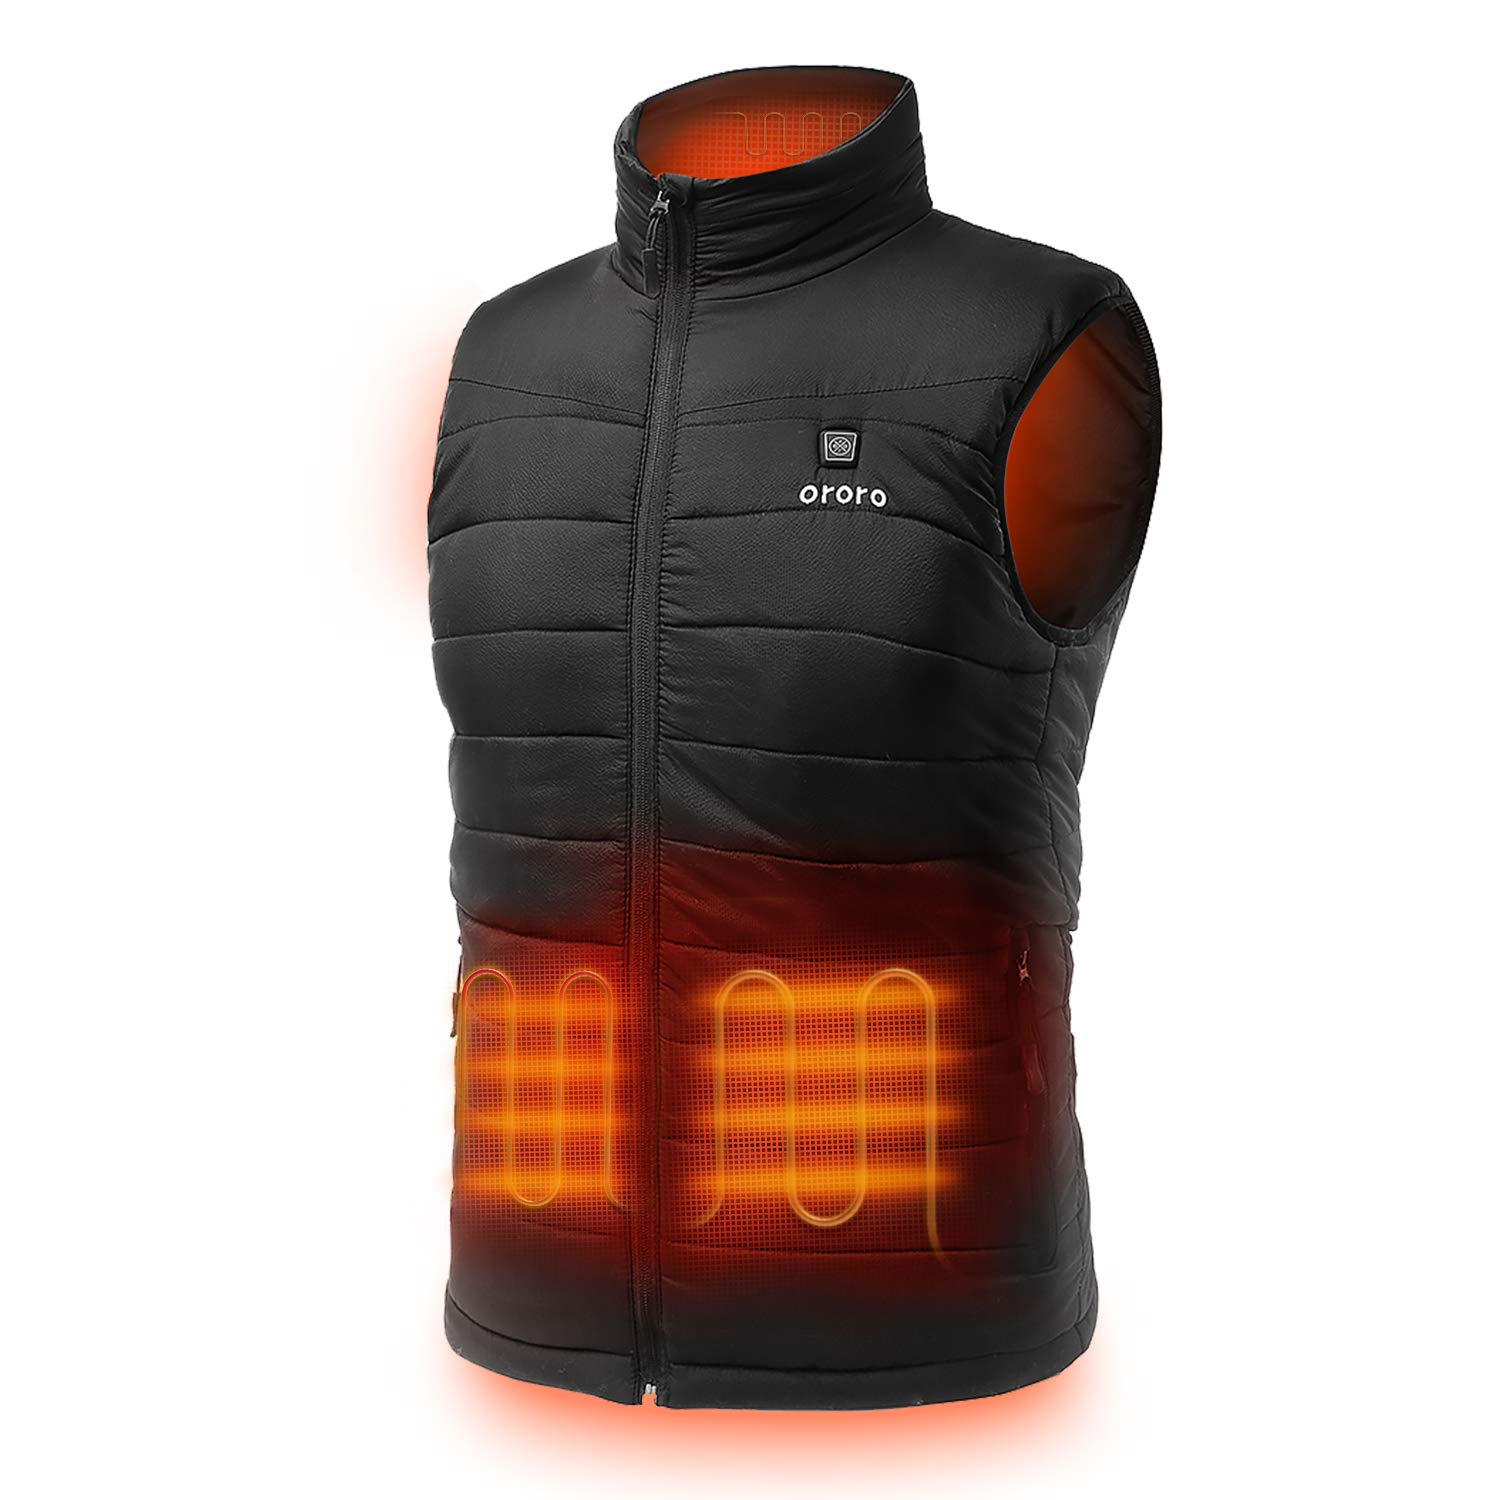 ORORO Men's Lightweight Heated Vest with Battery Pack (XXX-Large) Black by ORORO